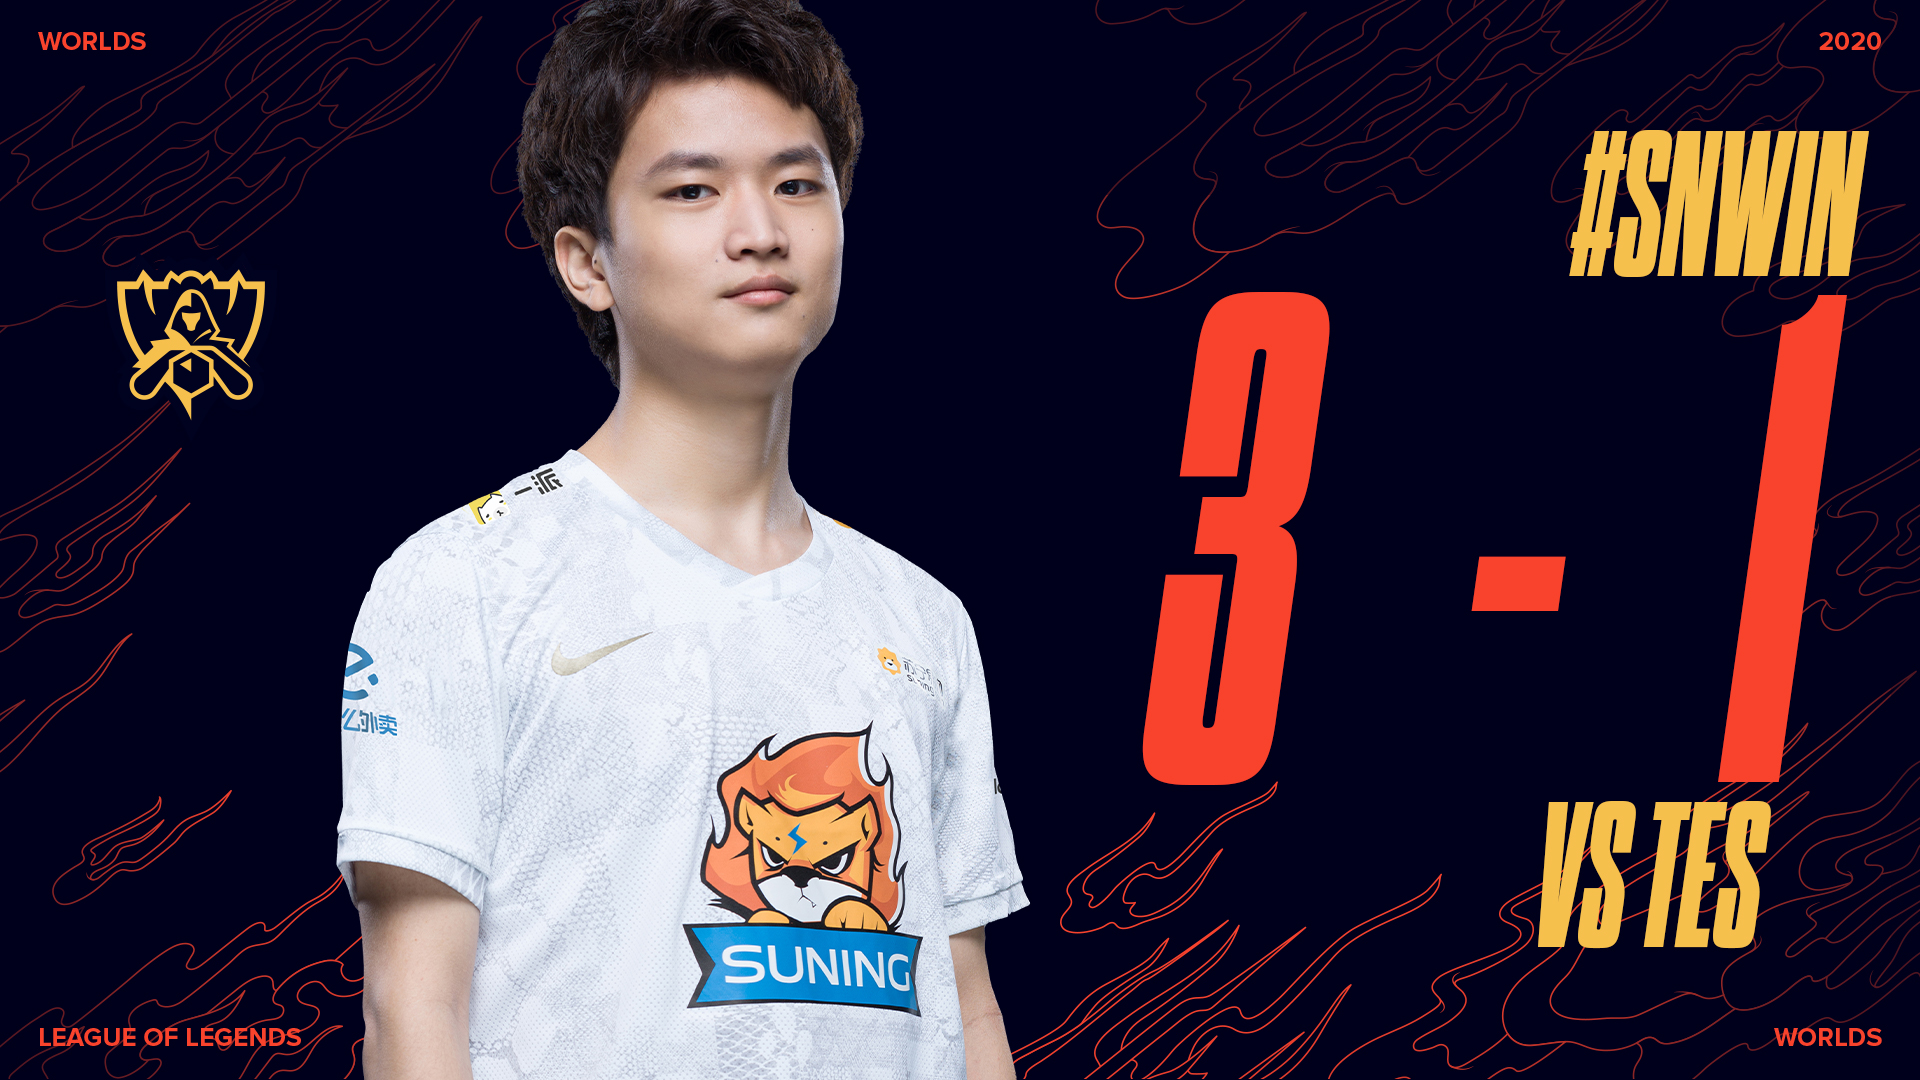 Suning took down TOP Esports in the second Worlds semifinals